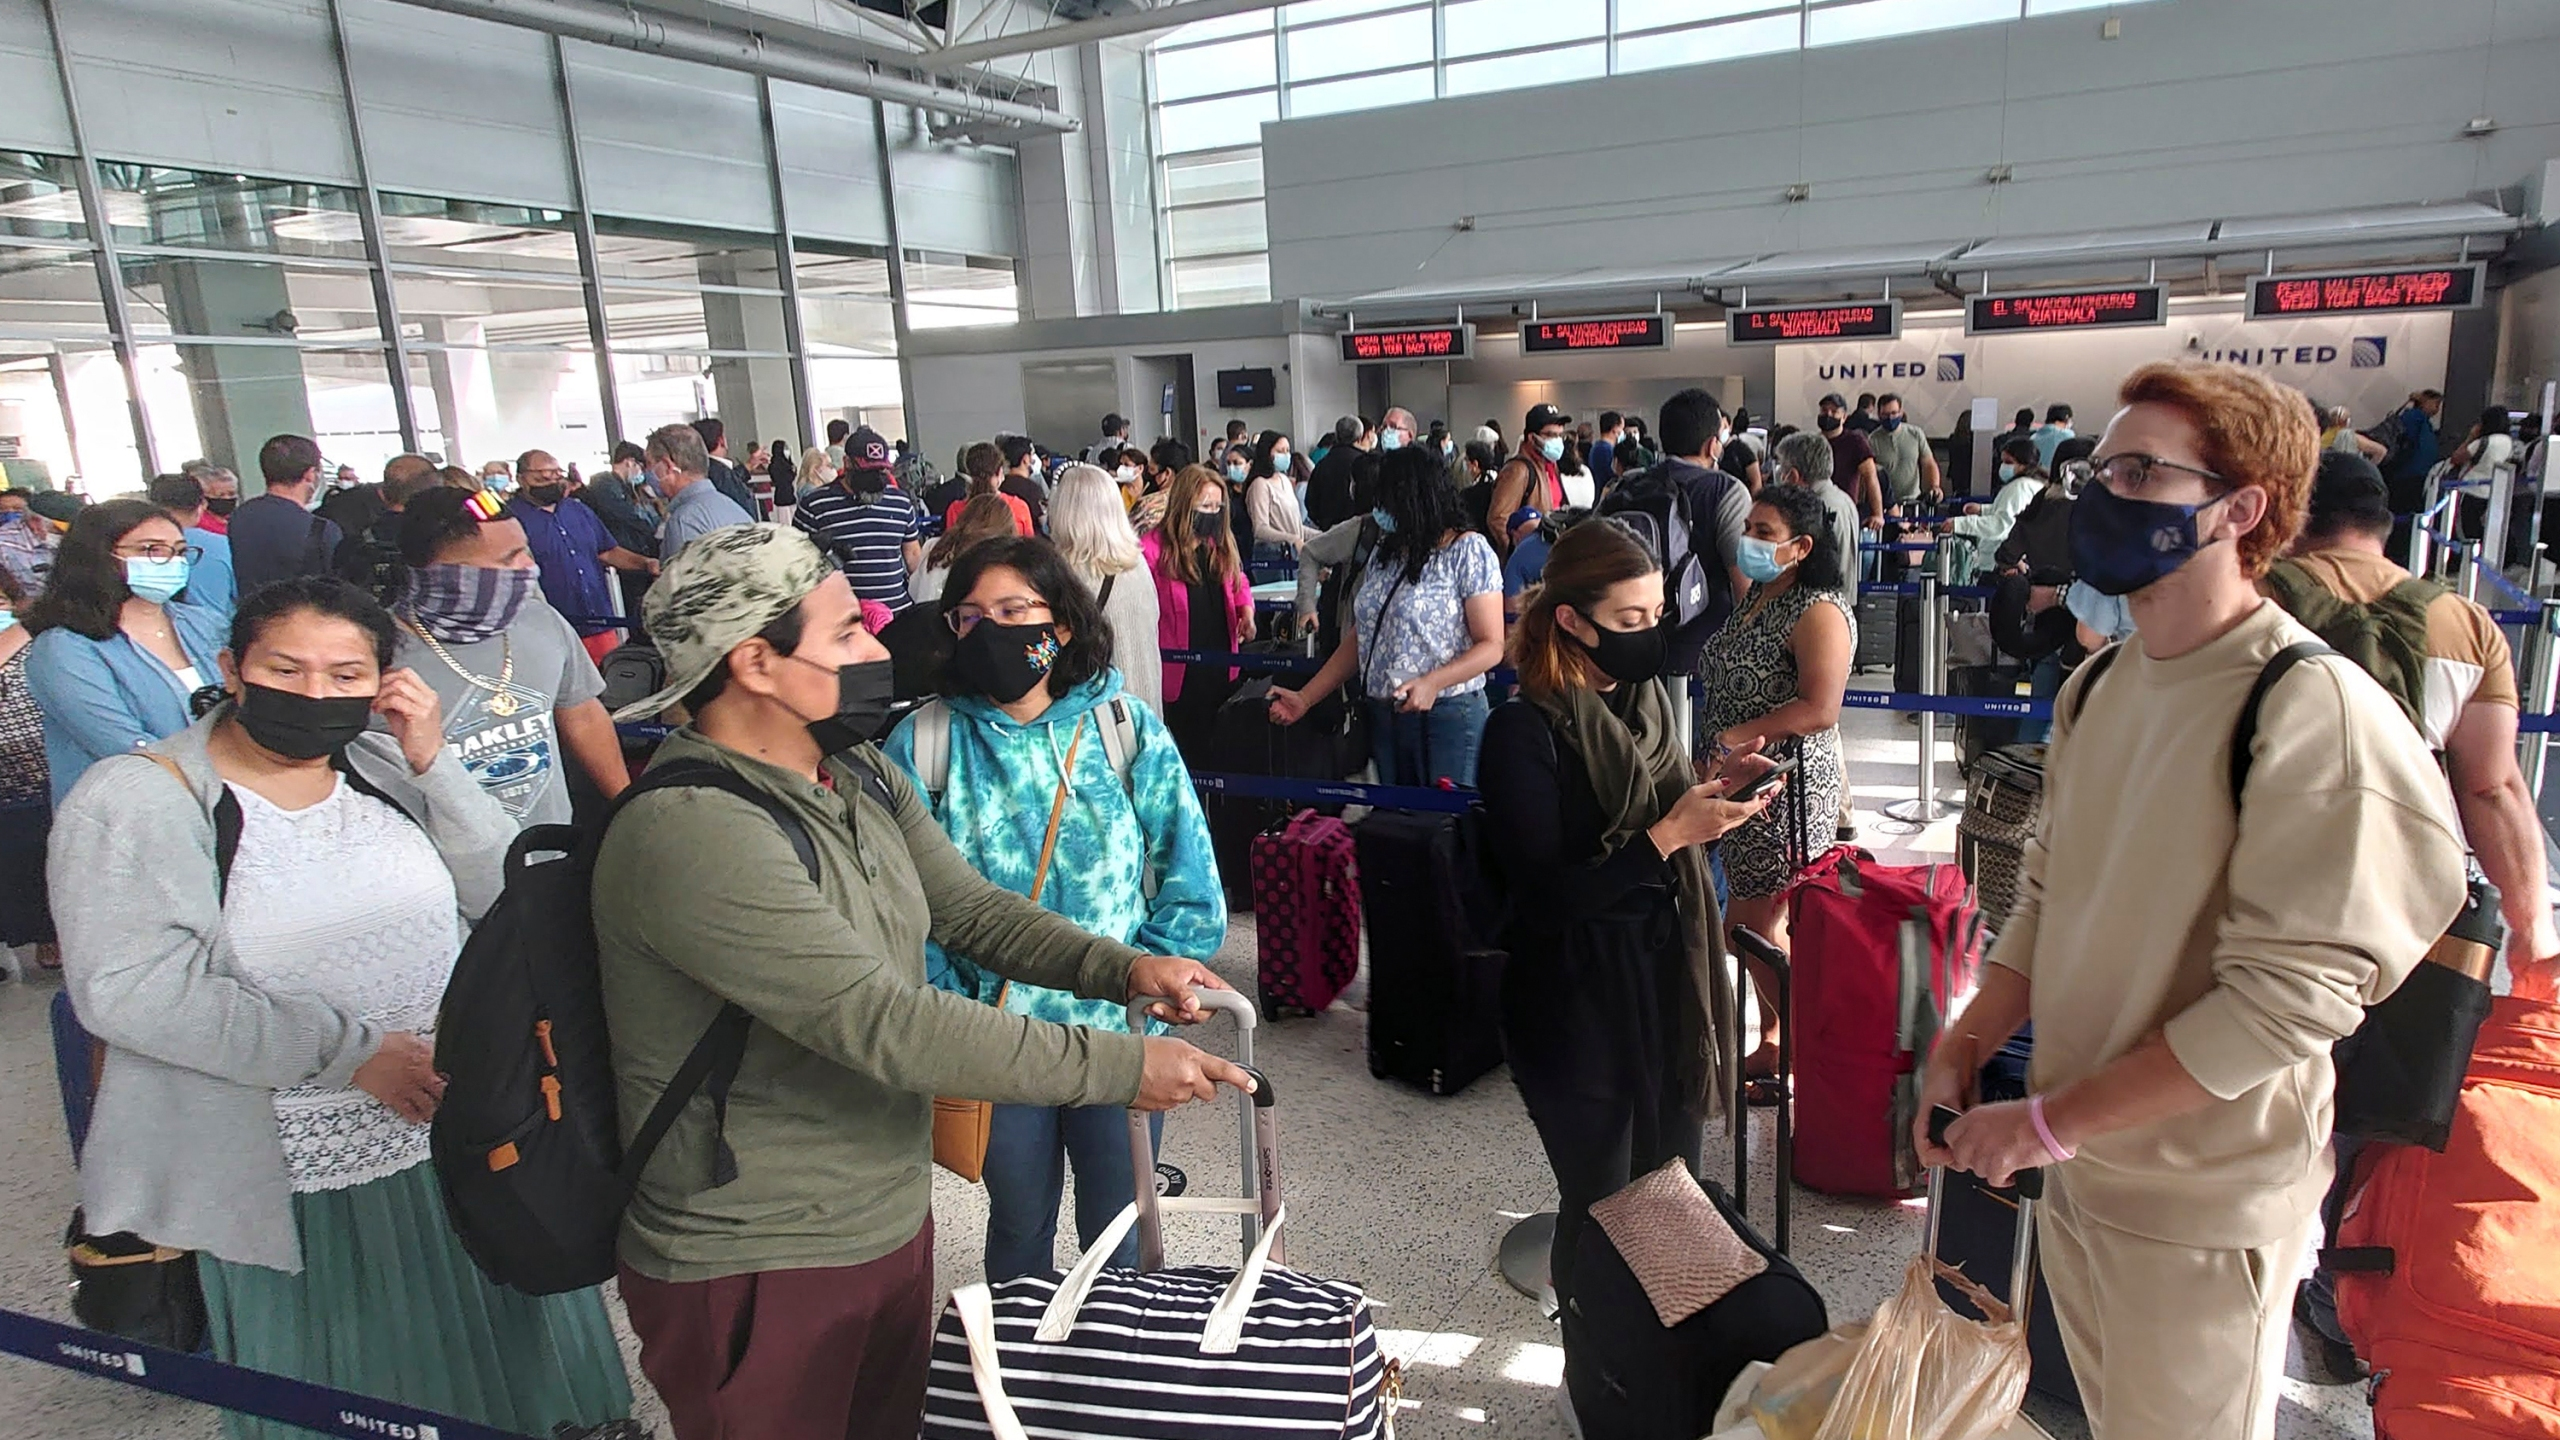 Airline passengers wait to check-in at George Bush Intercontinental Airport Sunday, May 16, 2021, in Houston. (AP Photo/David J. Phillip)